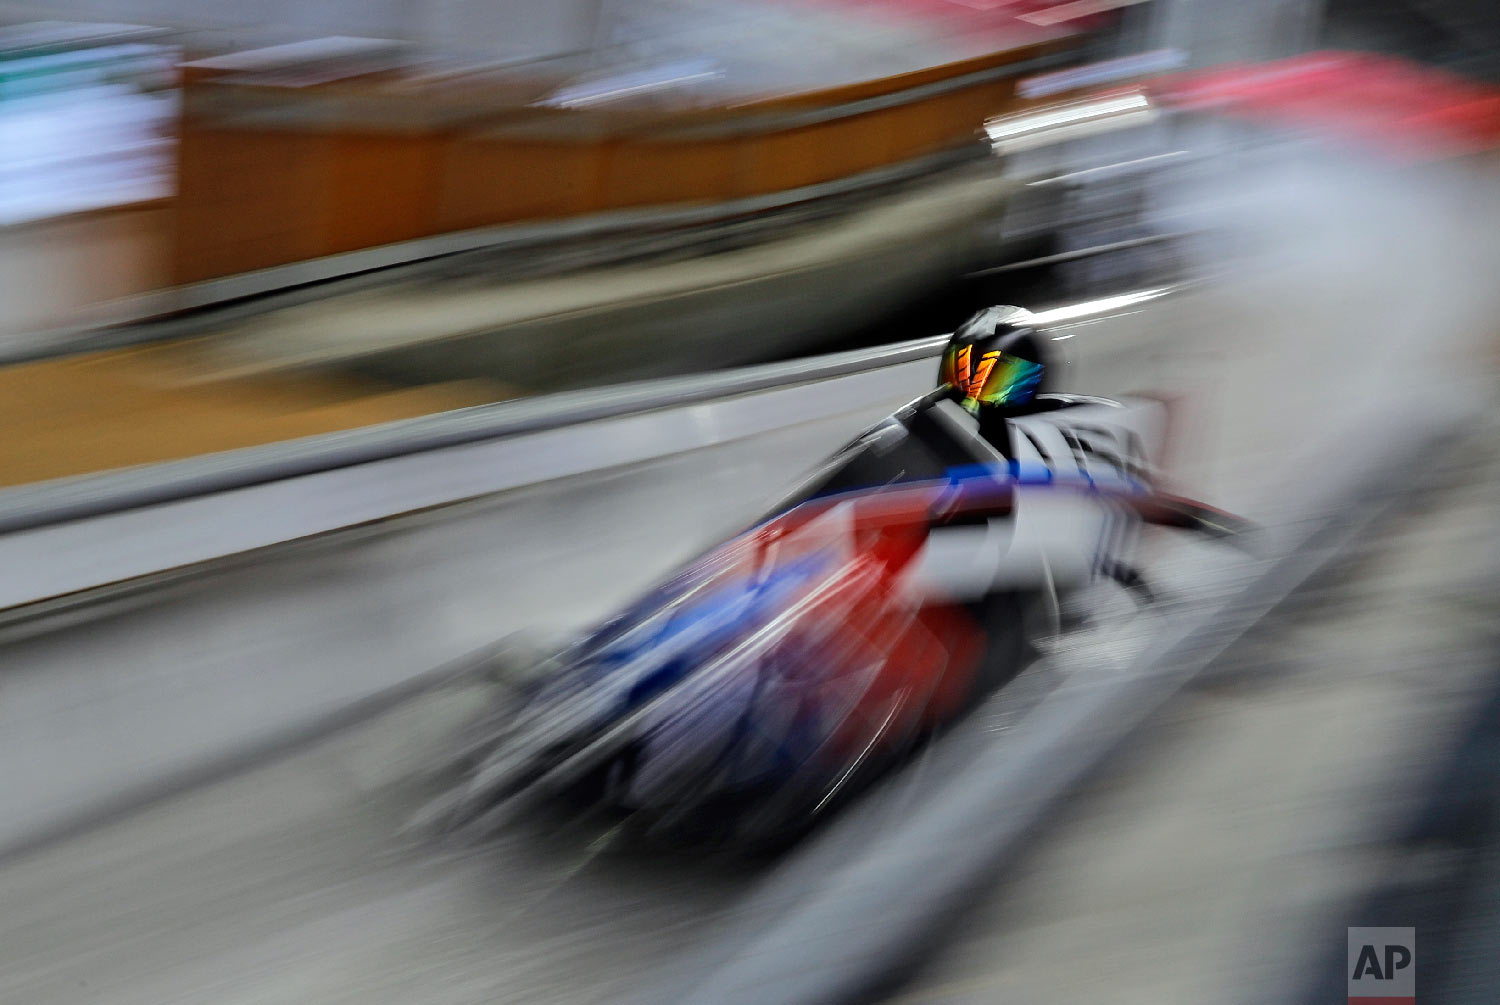 Driver Codie Bascue and Samuel McGuffie of the United States take a practice run during training for the two-man bobsled at the 2018 Winter Olympics in Pyeongchang, South Korea, Thursday, Feb. 15, 2018. (AP Photo/Wong Maye-E)